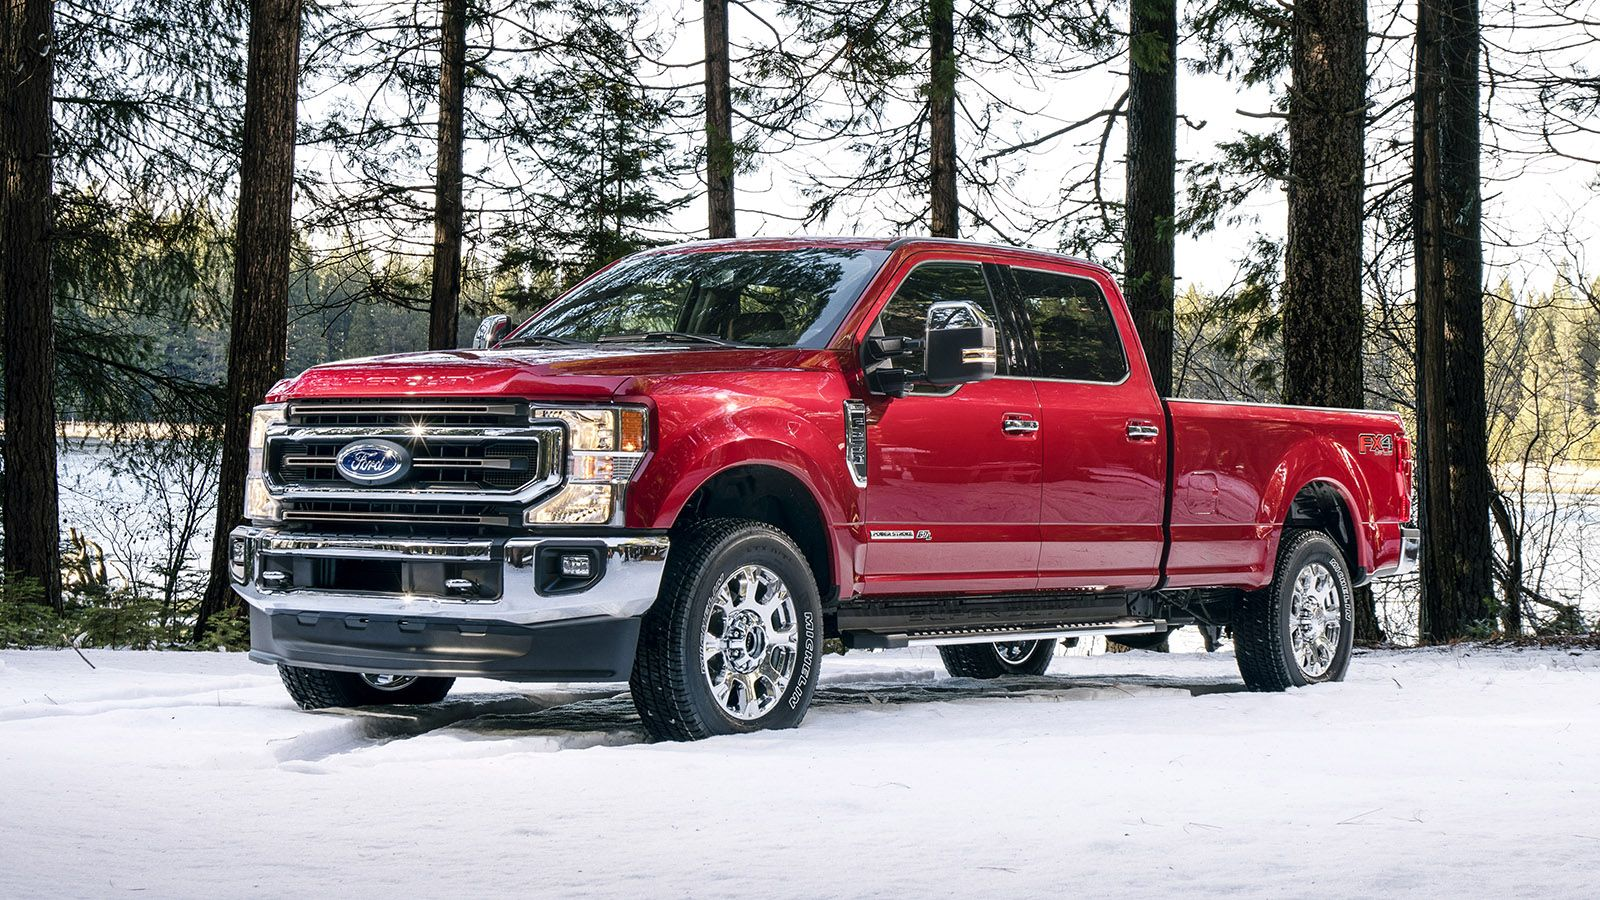 Ford Super Duty Pickups Are Getting A Monster 7 3 Liter V8